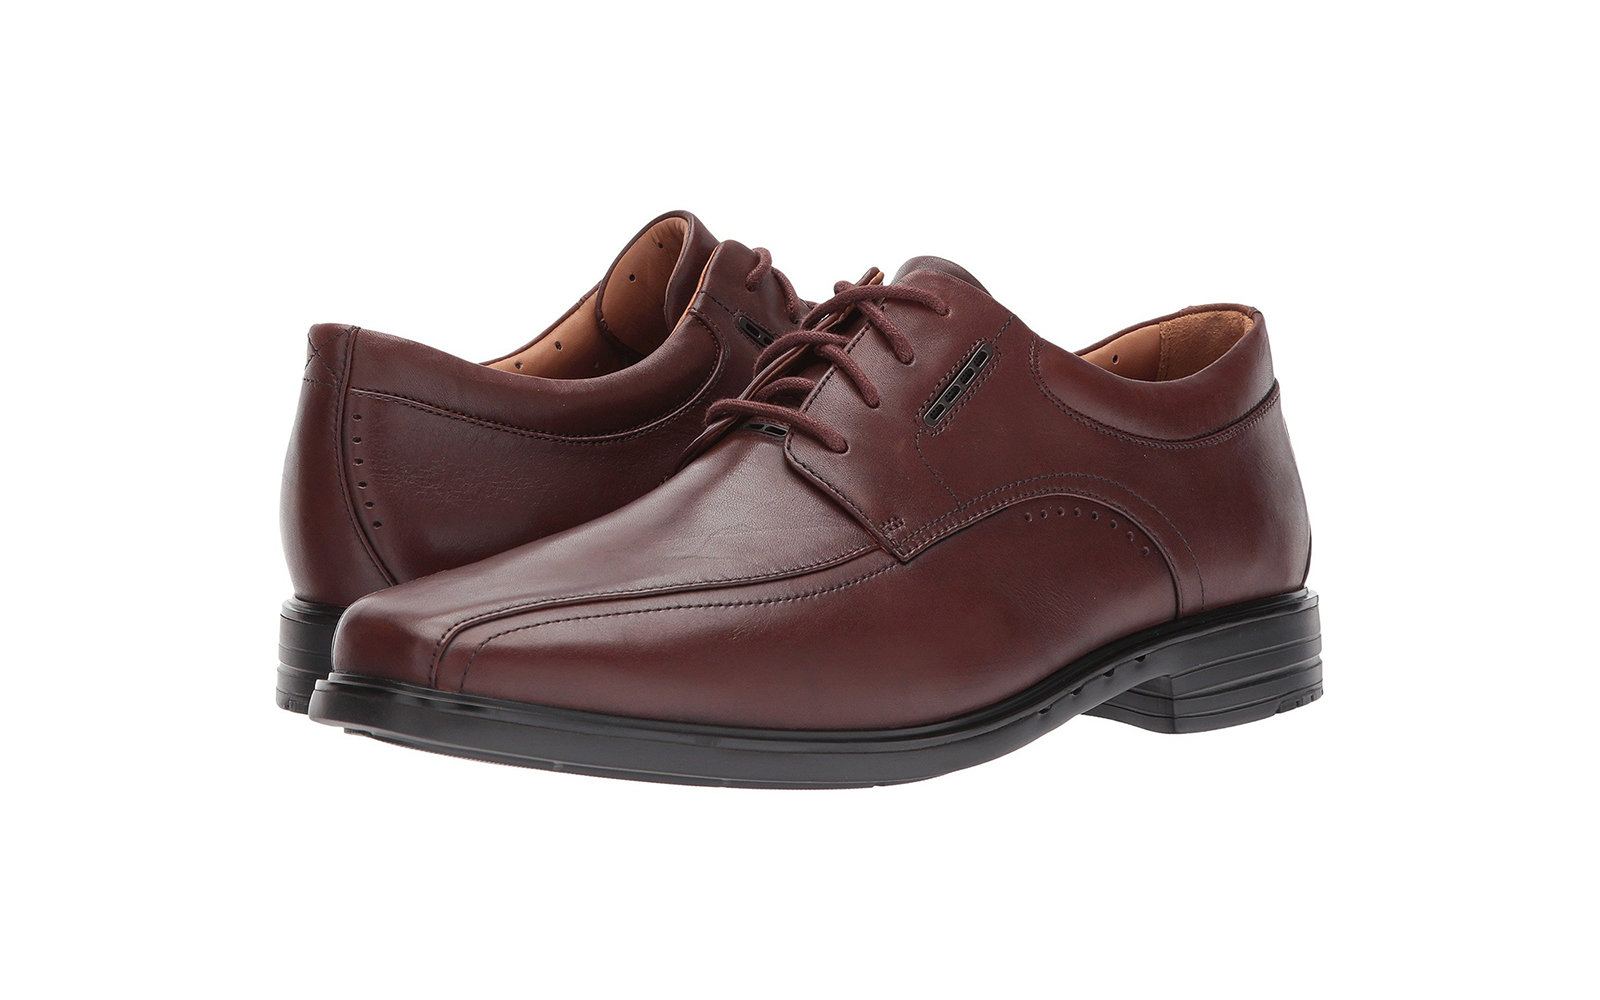 e170d1154dfb Clarks UnKenneth Way. Clarks UnKenneth Way Shoe